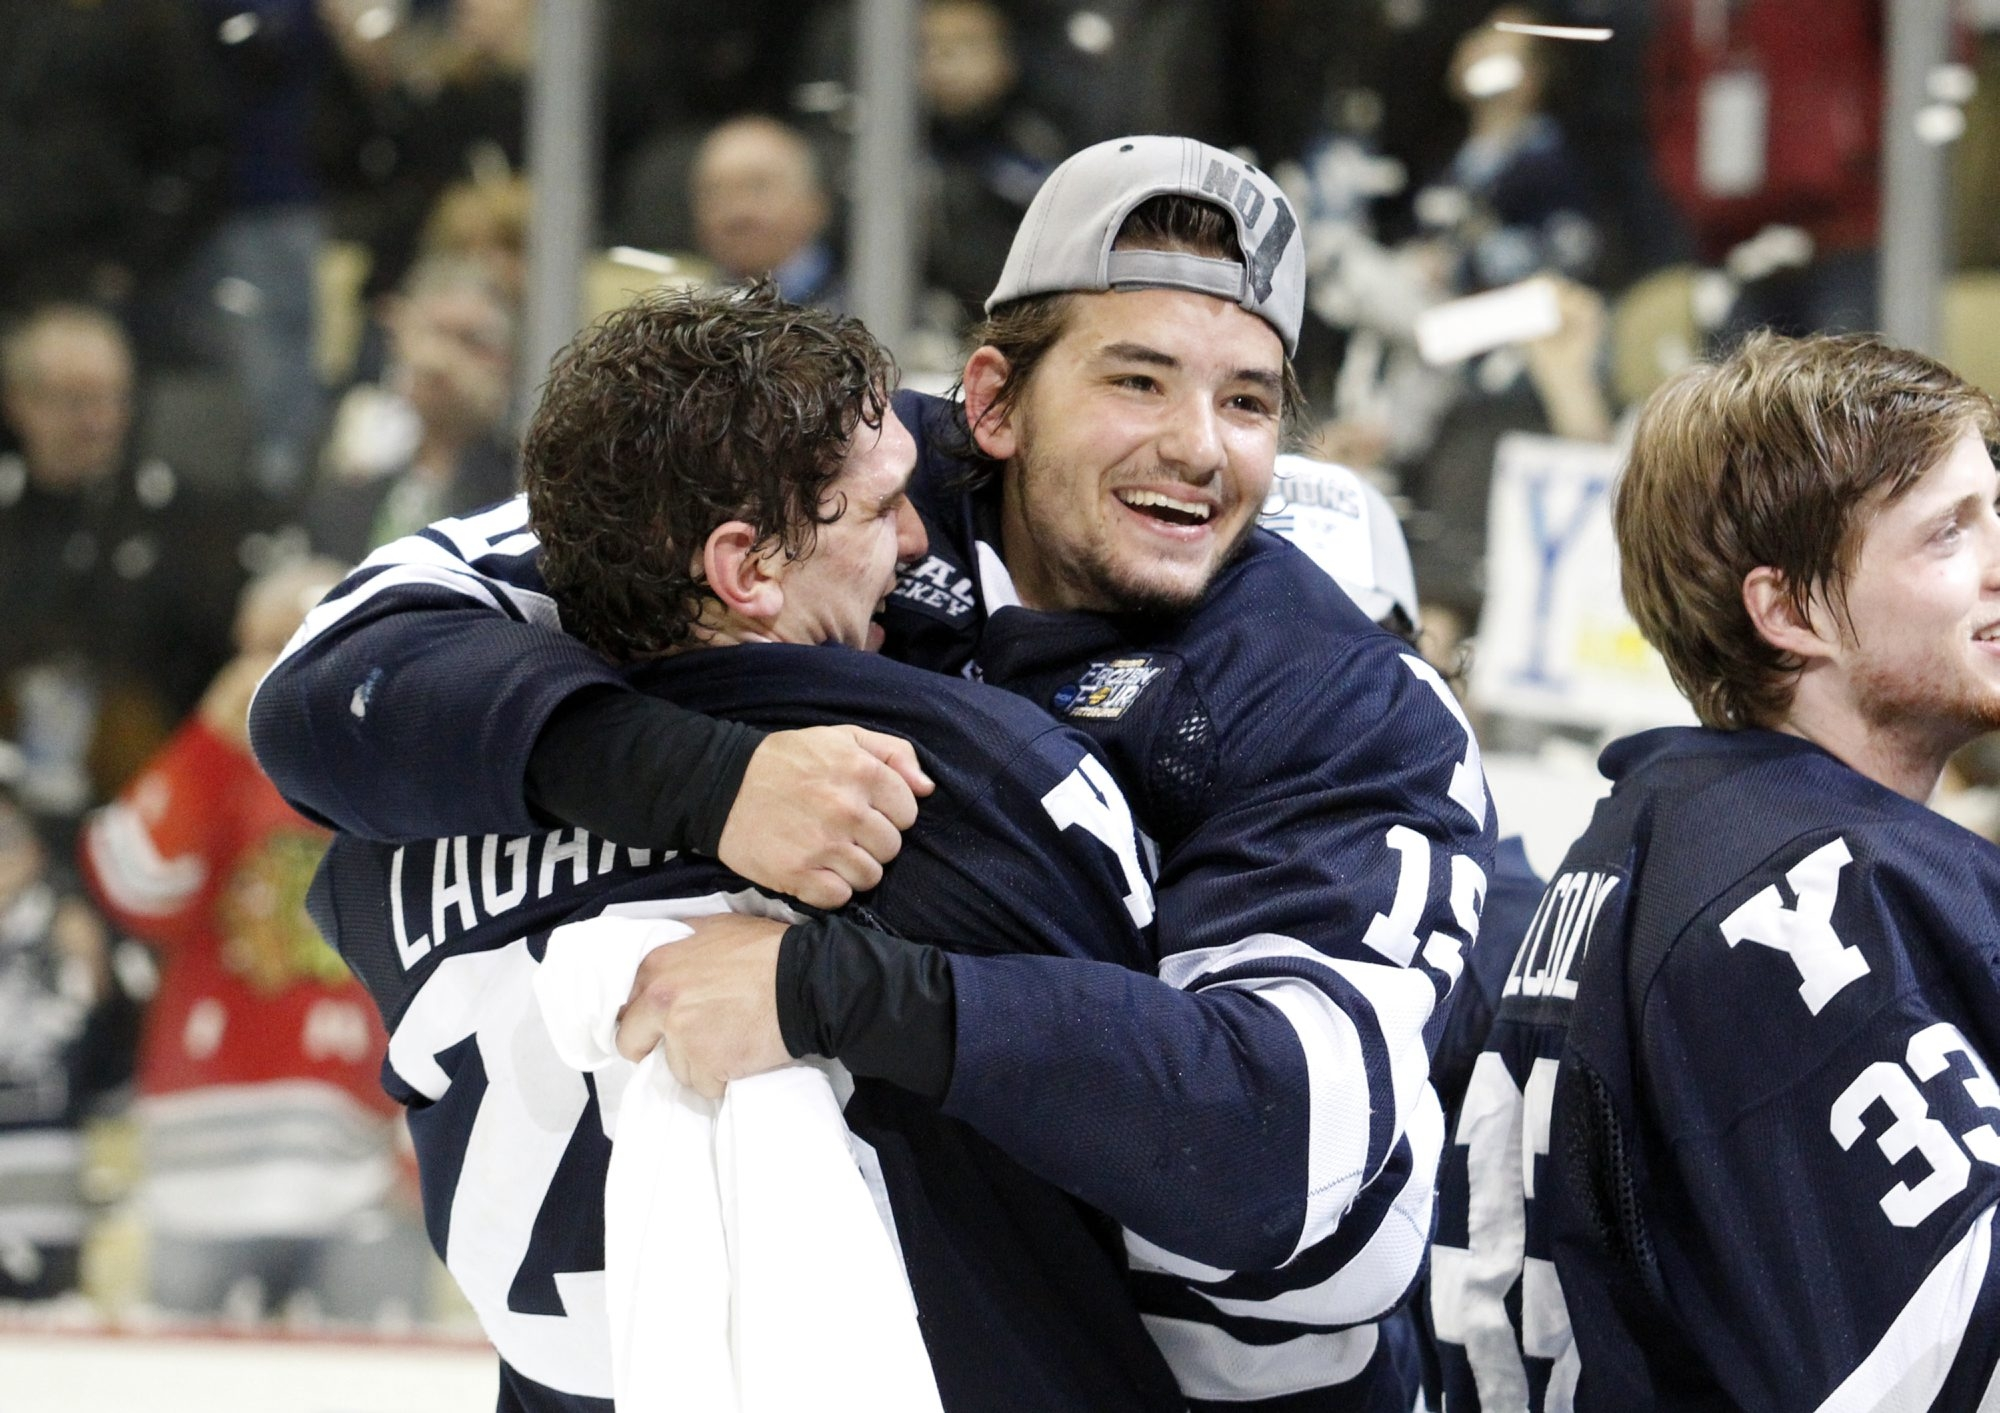 Anthony Day (19) celebrates Yale's shutout victory over Quinnipiac in the NCAA championship game.